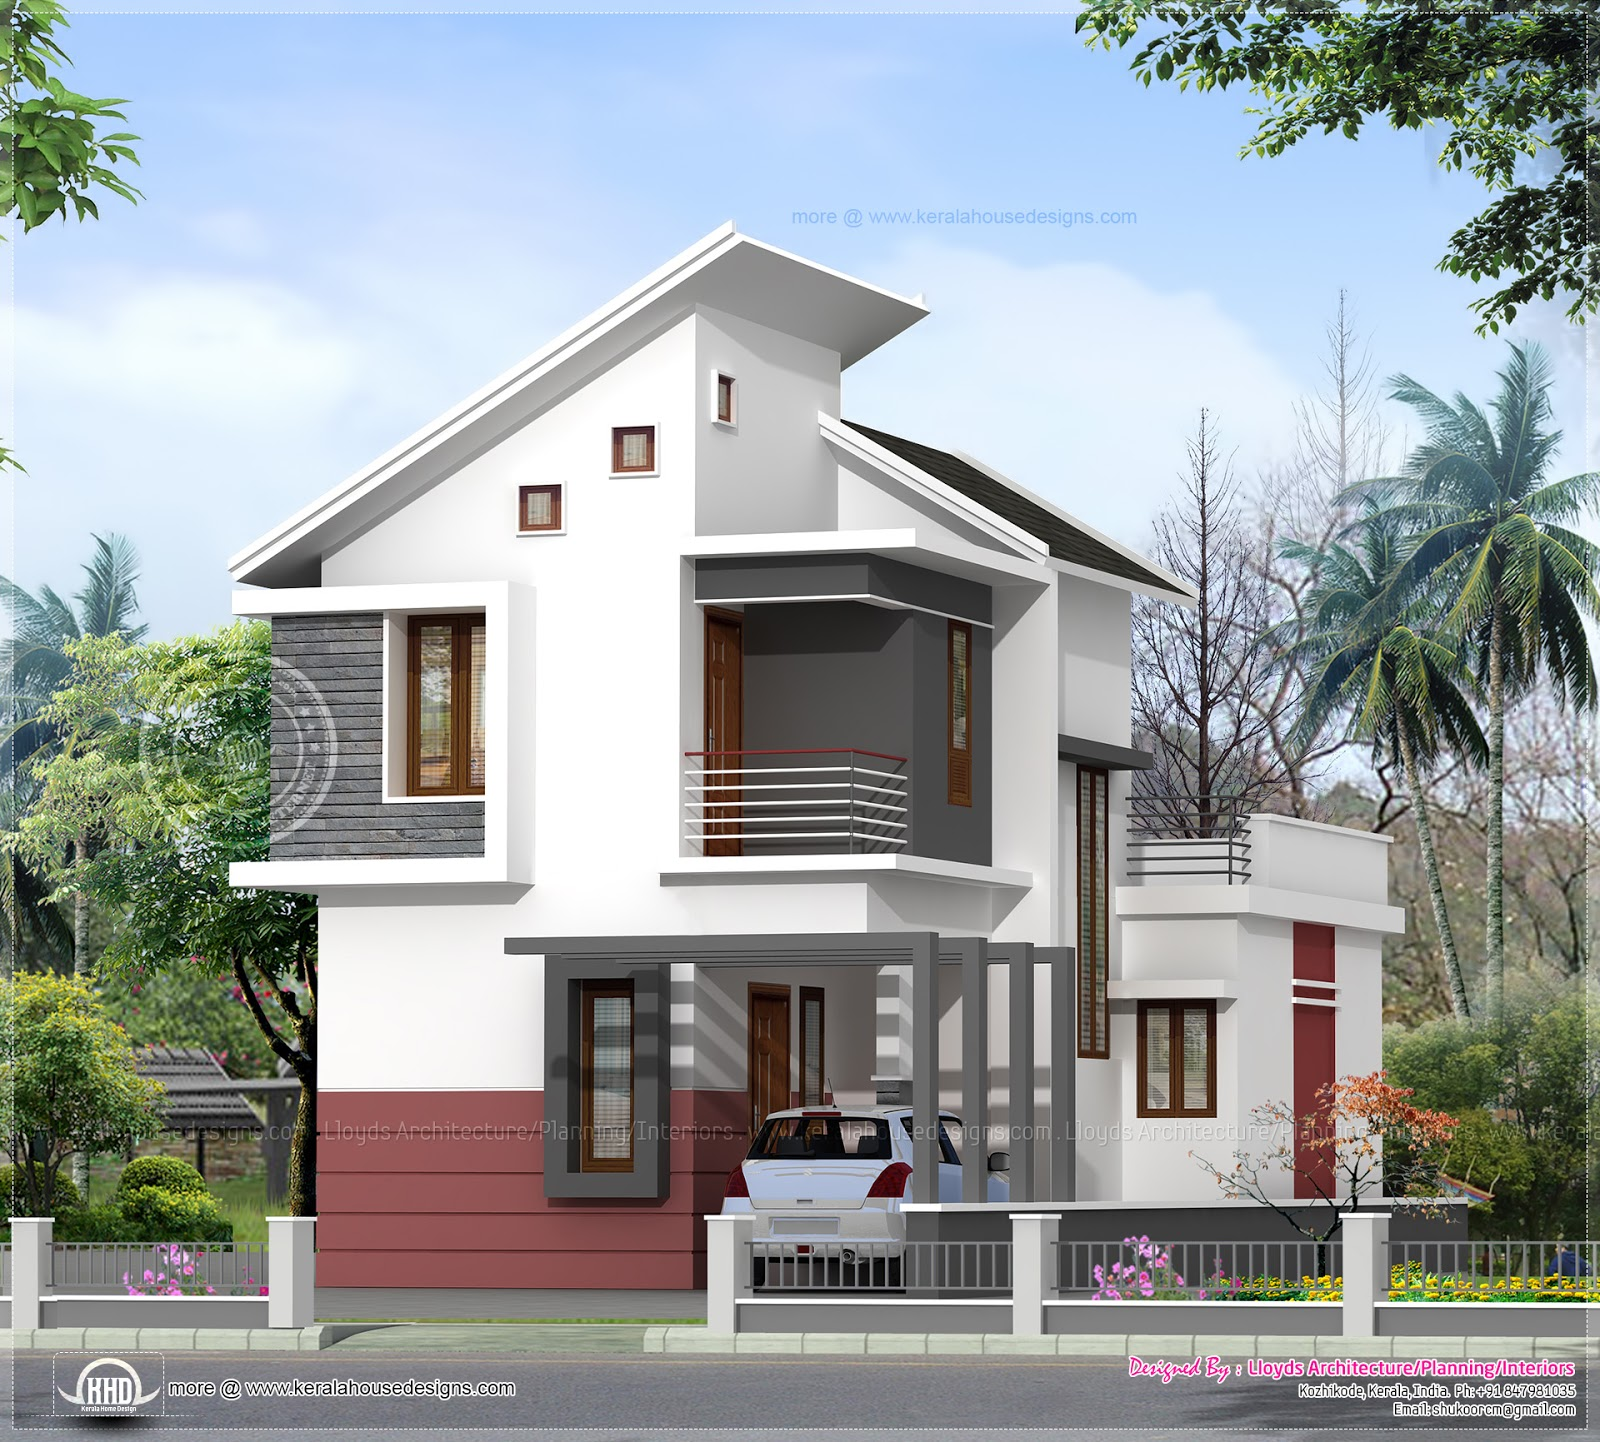 1197 sq ft 3 bedroom villa in 3 cents plot house design